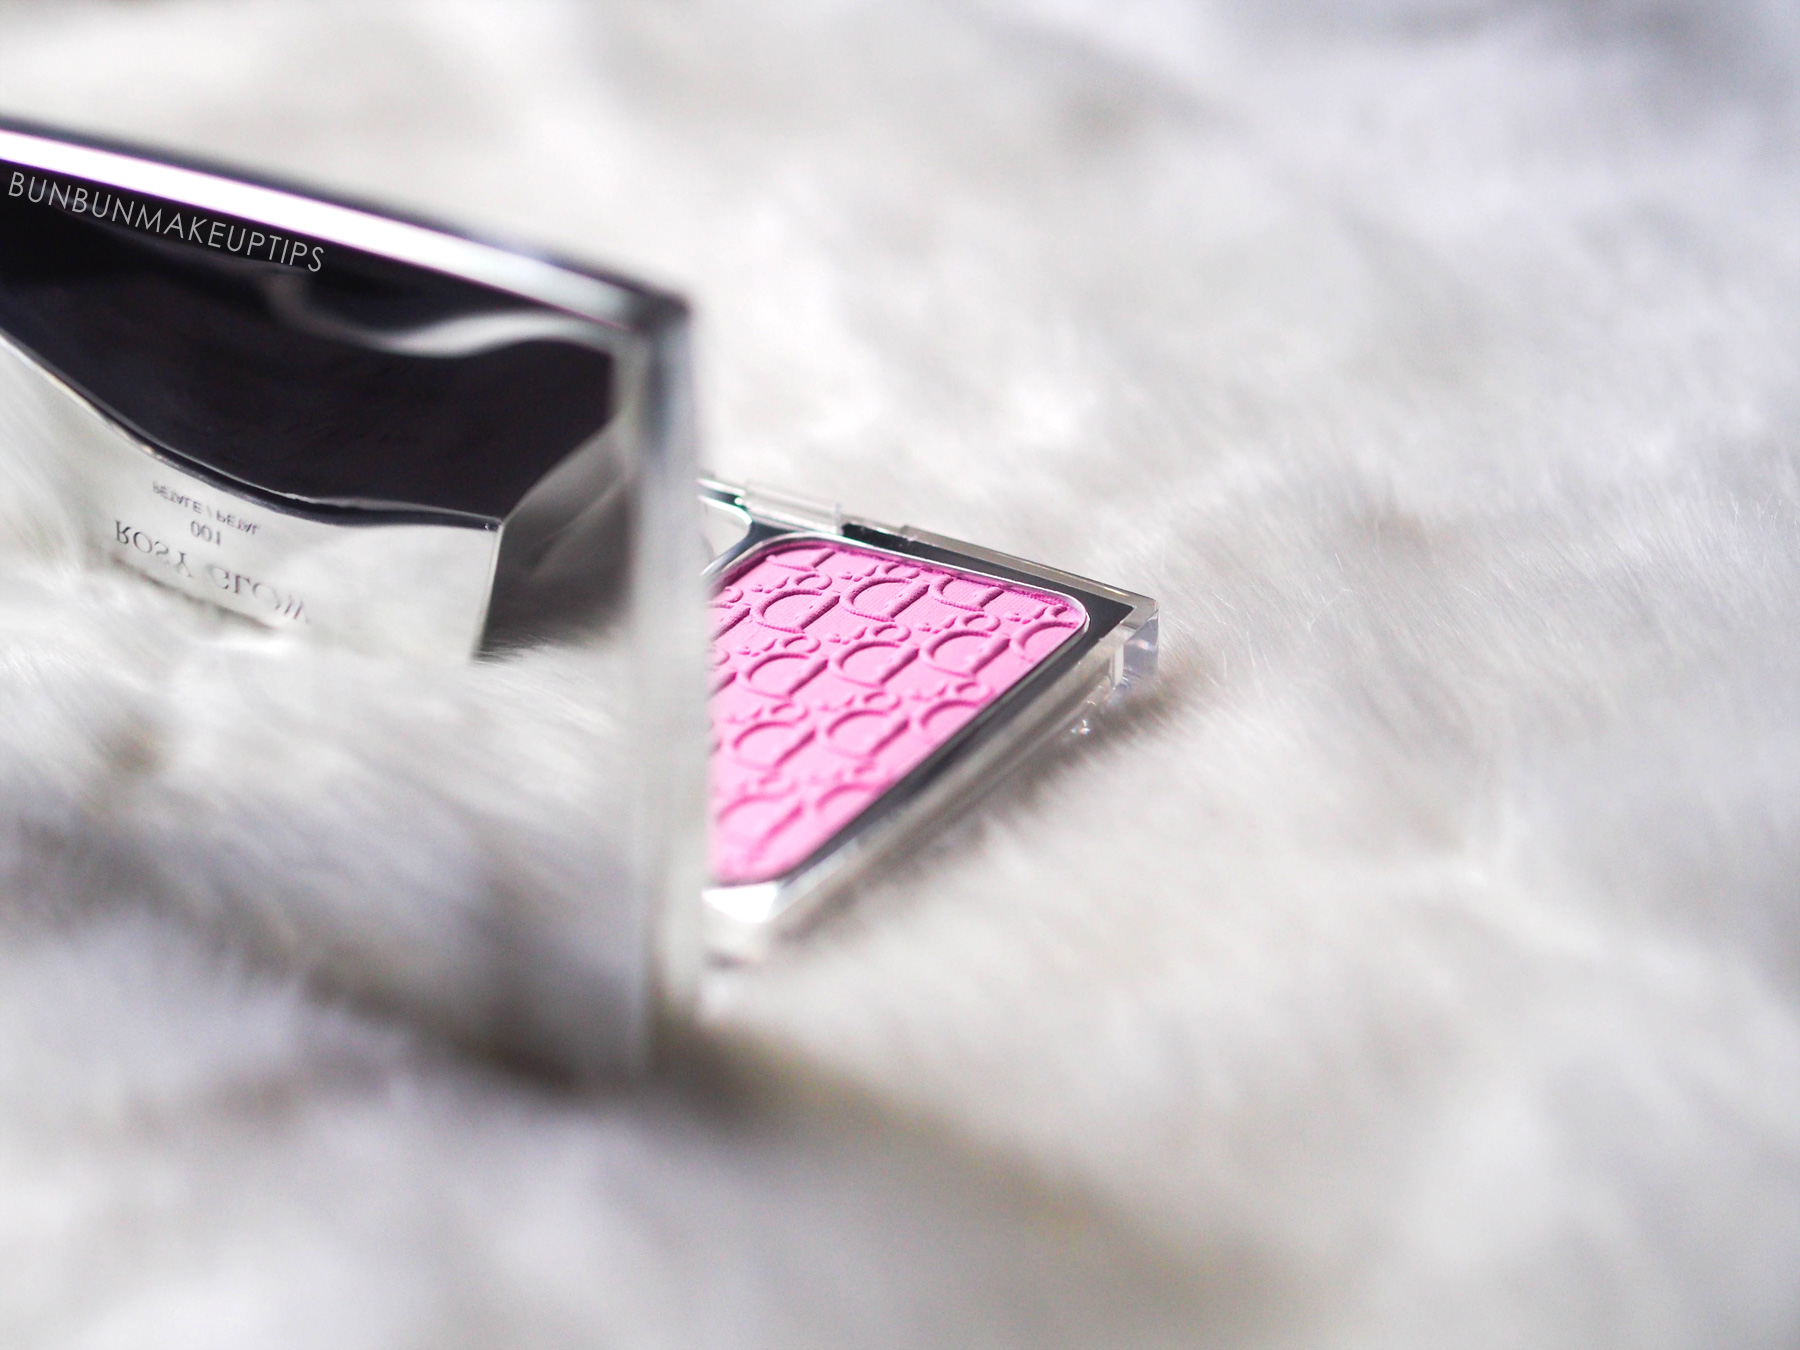 Dior-Rosy-Glow-Healthy-Glow-Awakening-Blush-Review_5